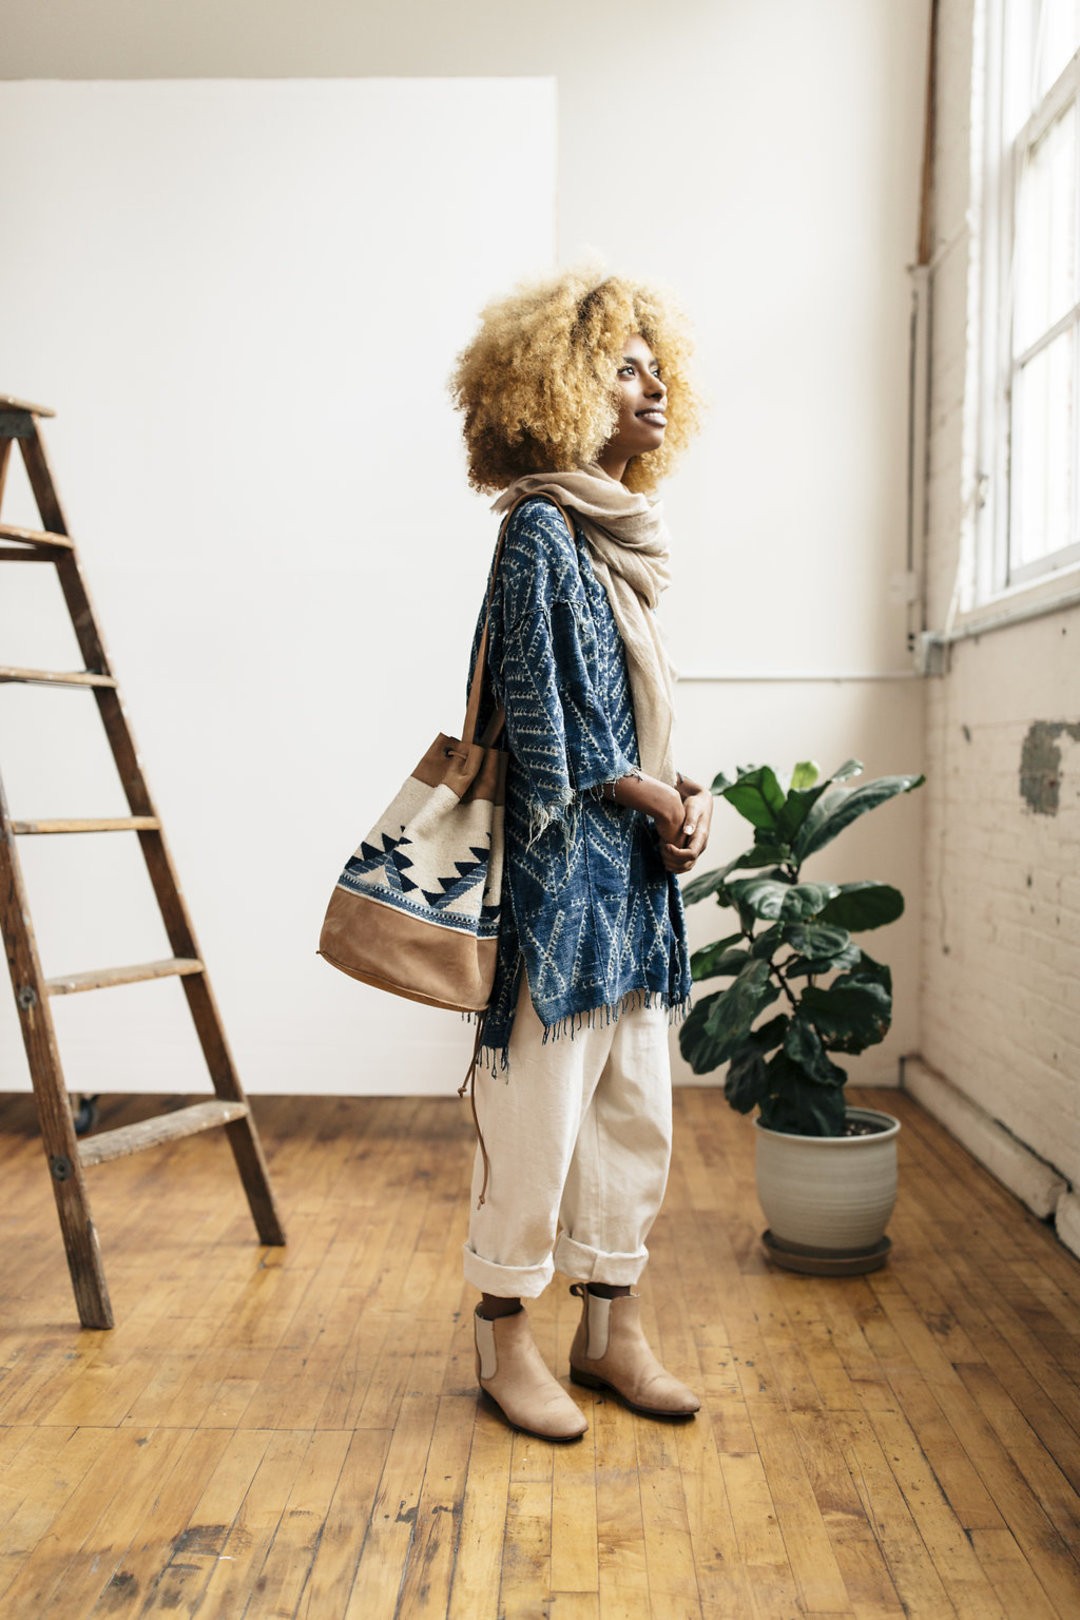 Brand Review - Ethical women's clothing and accessories by Manos Zapotecas